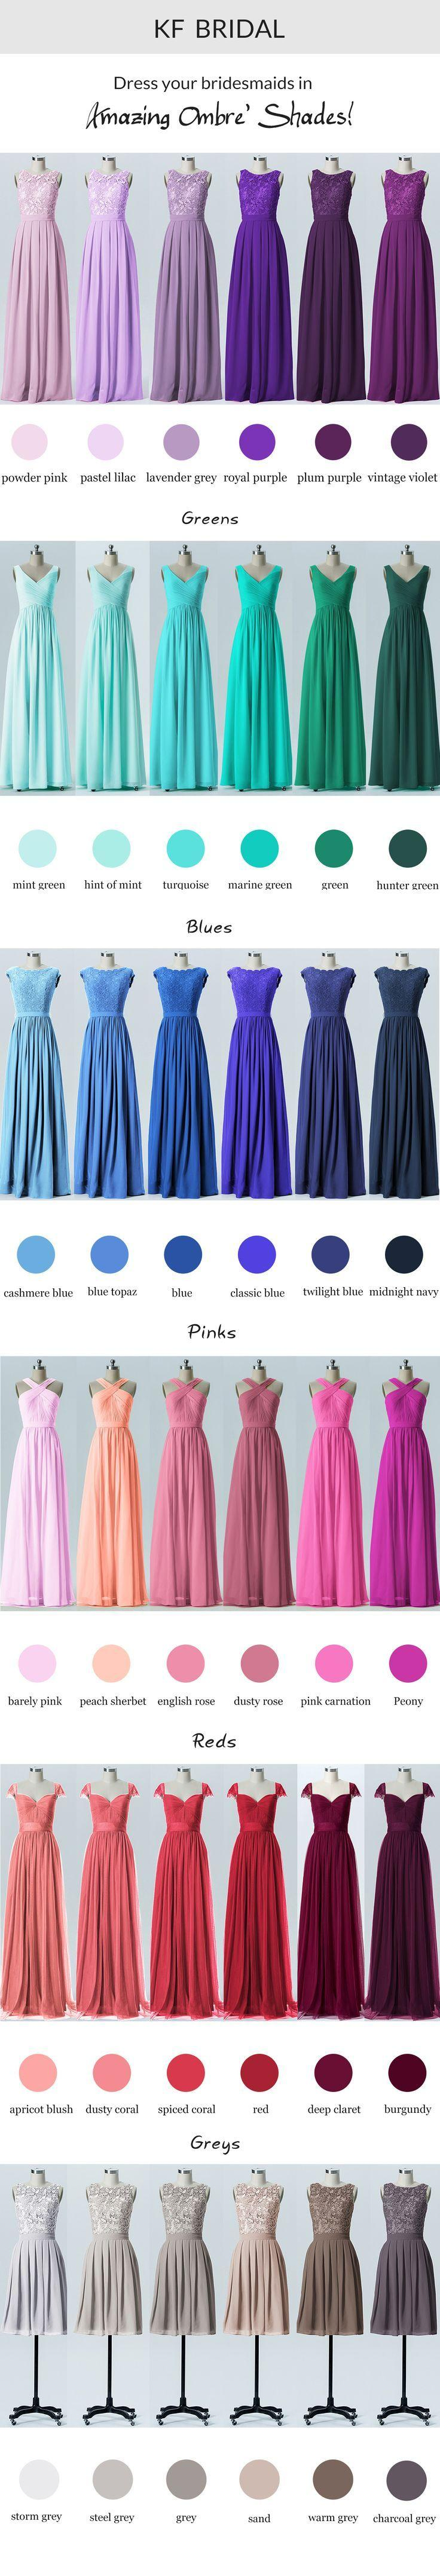 Wedding - Ombre Bridesmaid Dress